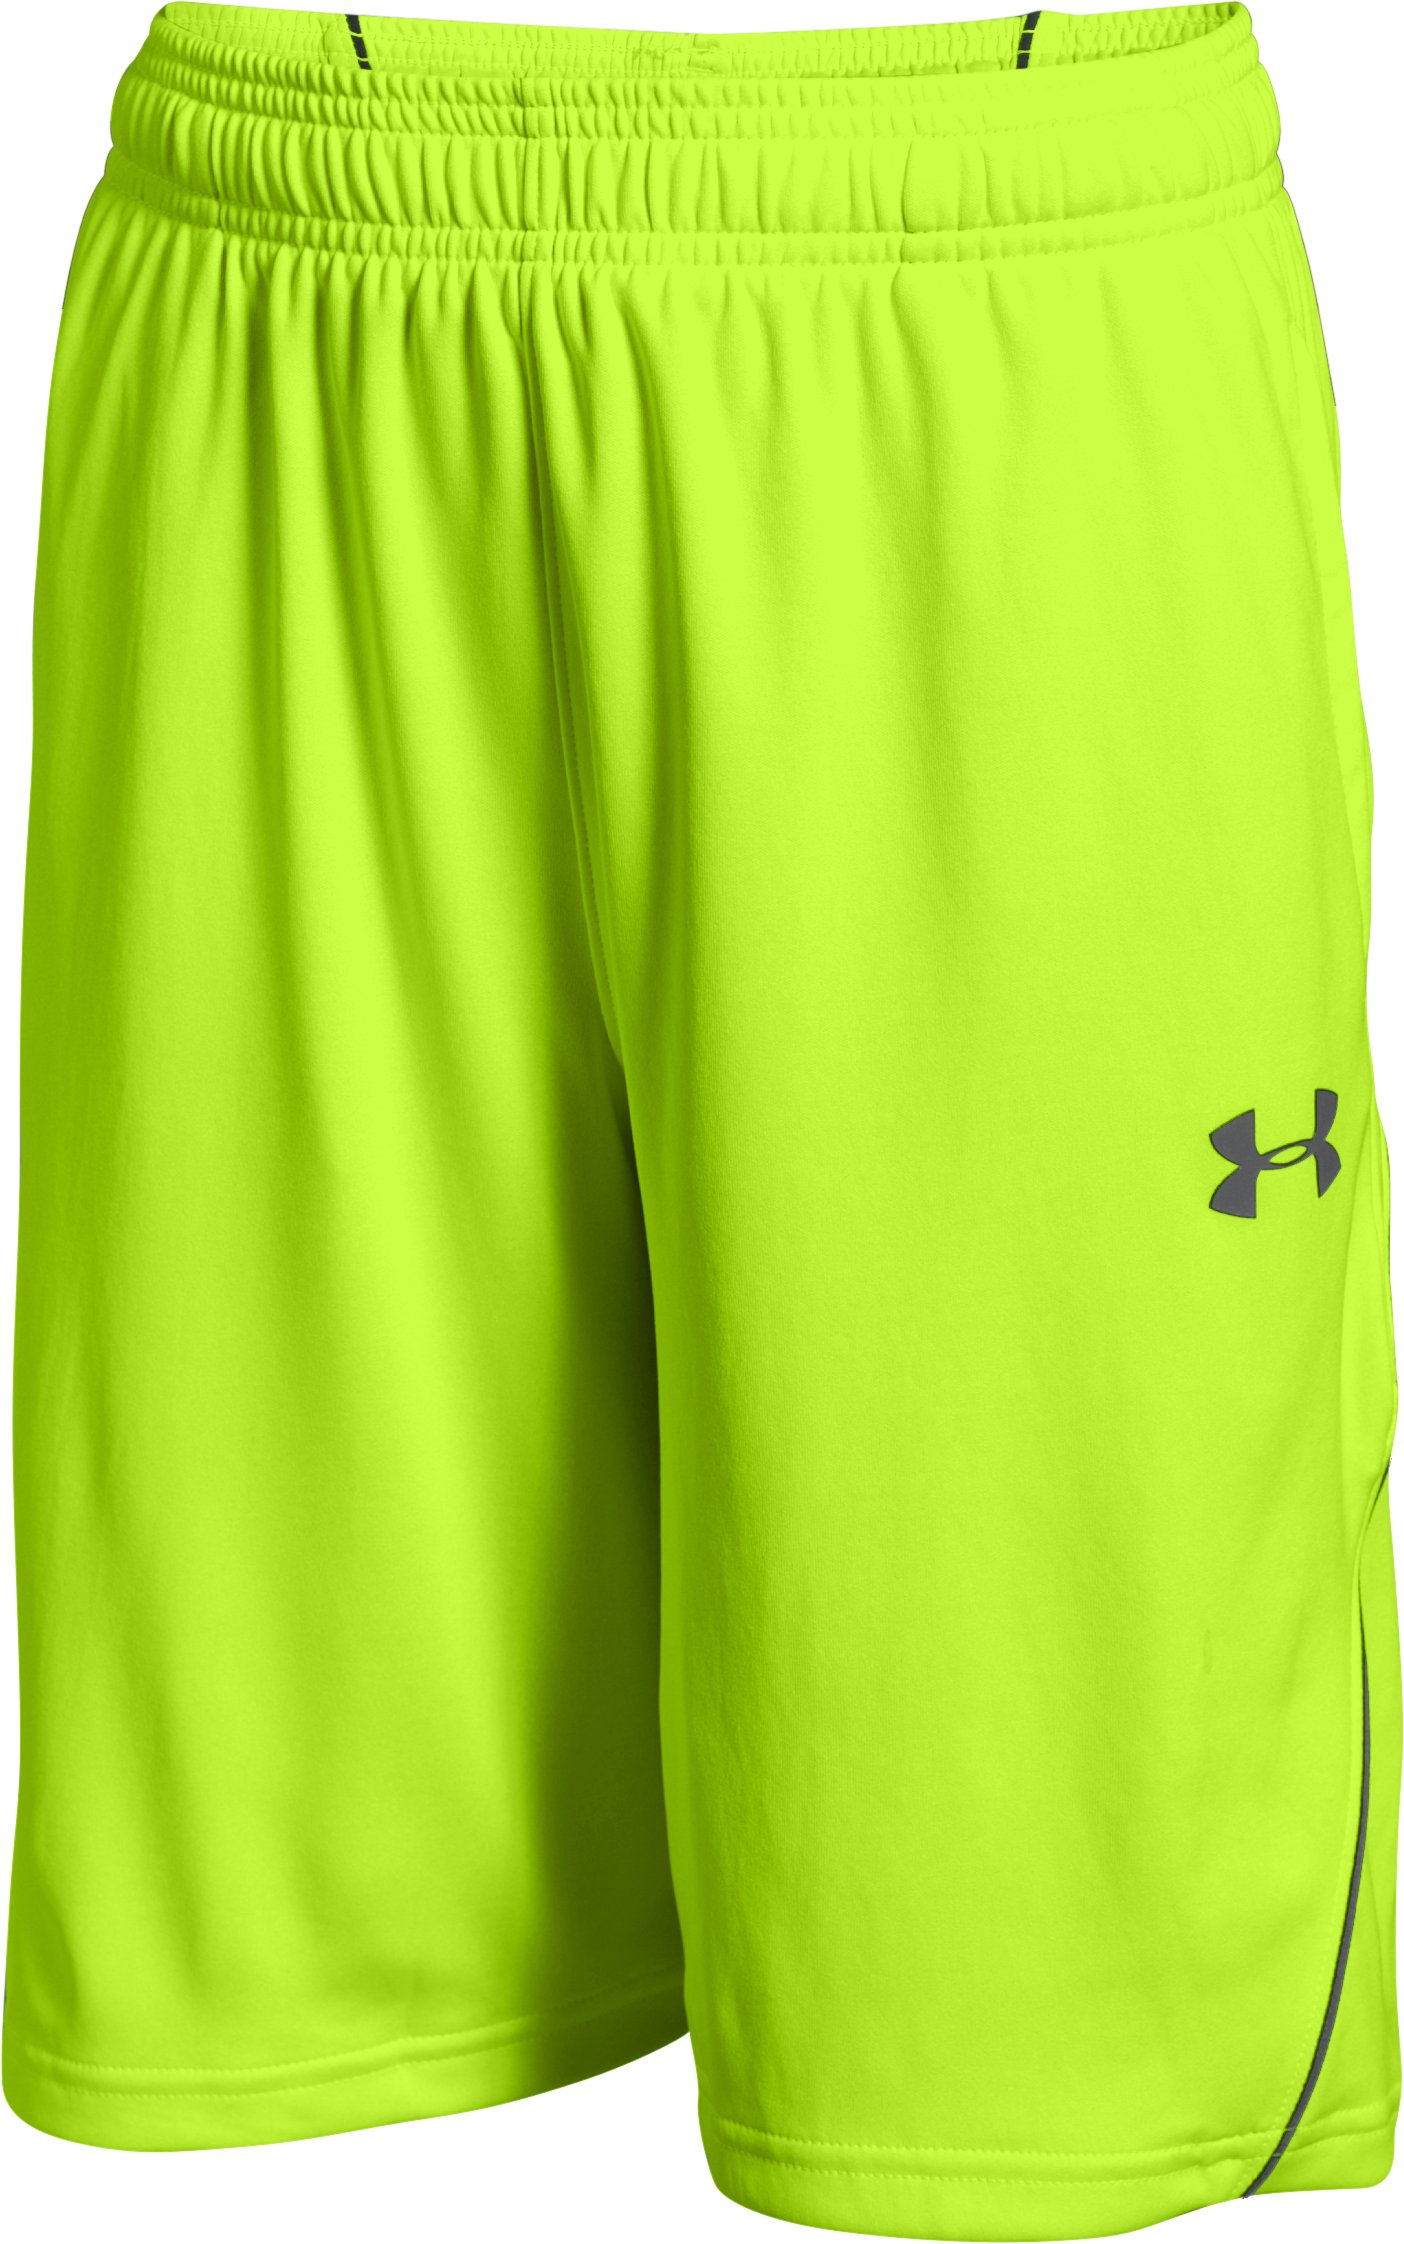 Boys' UA Never Back Down Shorts, FUEL GREEN